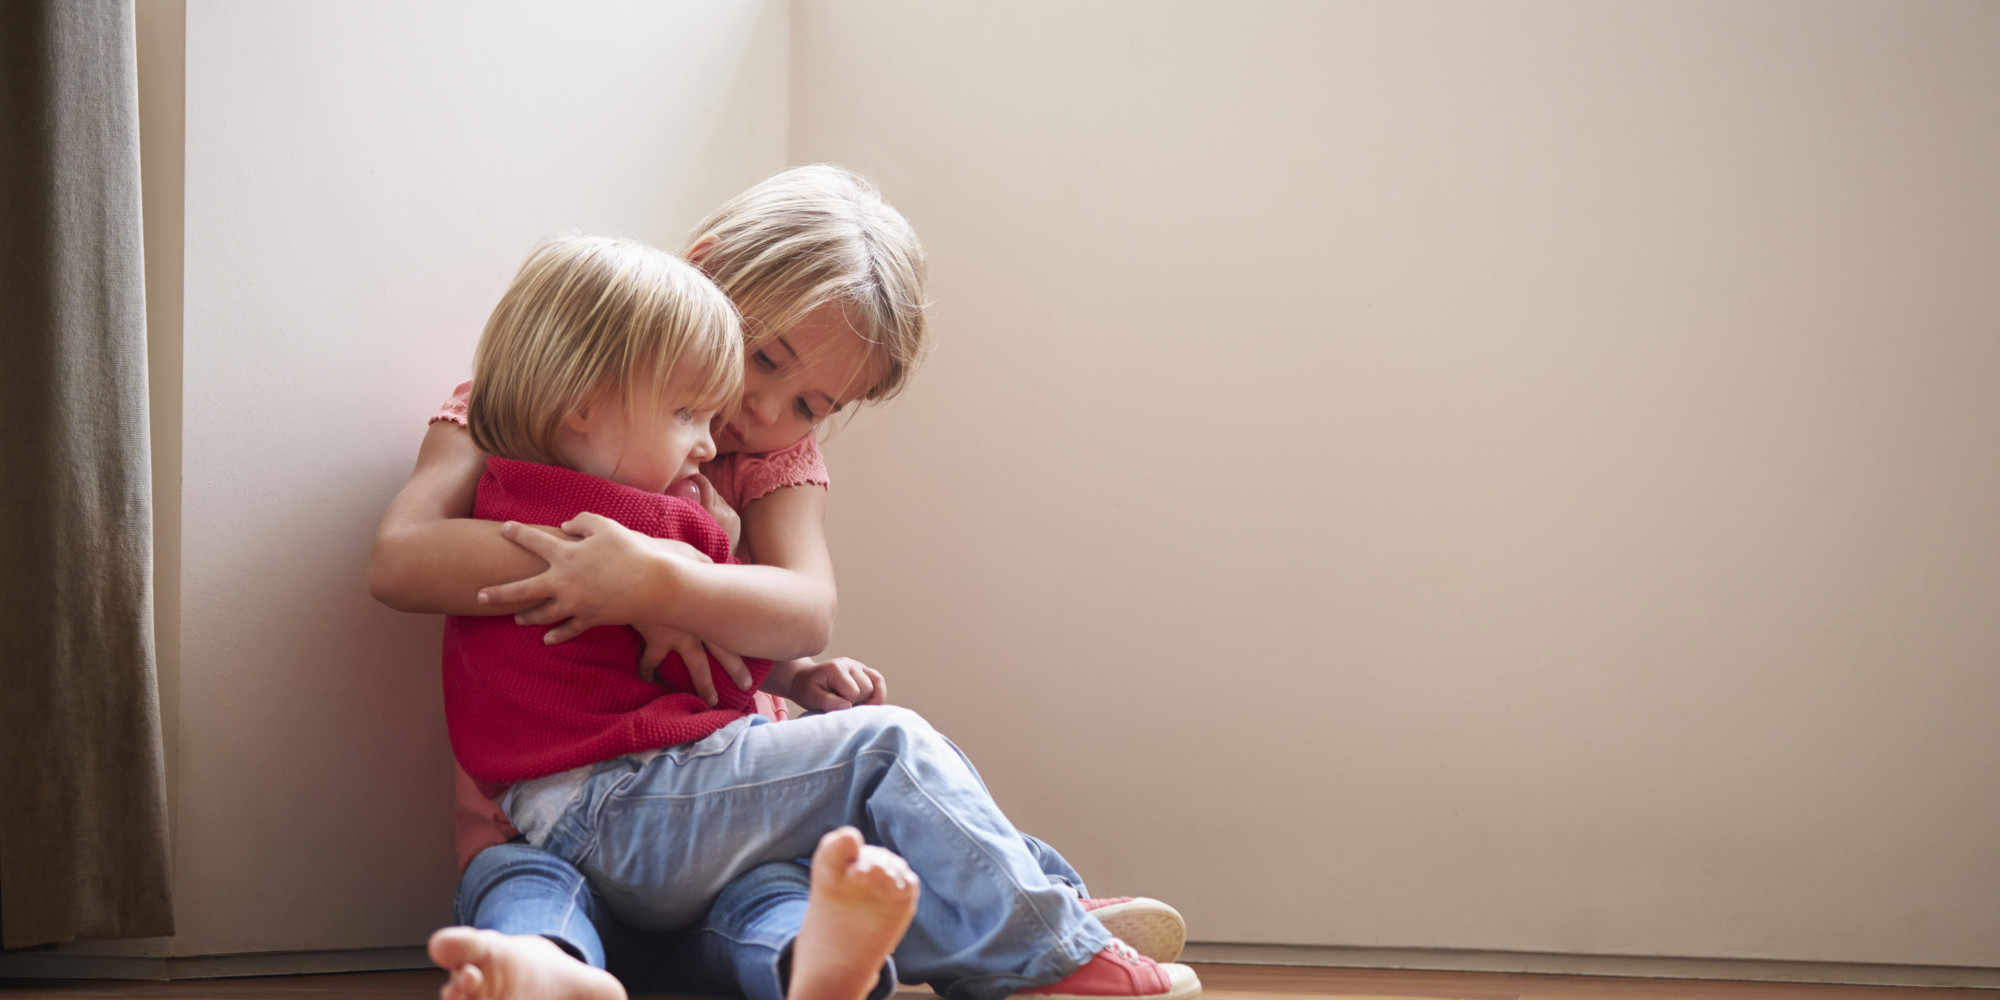 primary caregiving for toddlers in early Primary caregiving is a programme that follows children's individual needs your child's primary caregiver will ensure your child's daily routines and needs are met within a secure and loving environment.